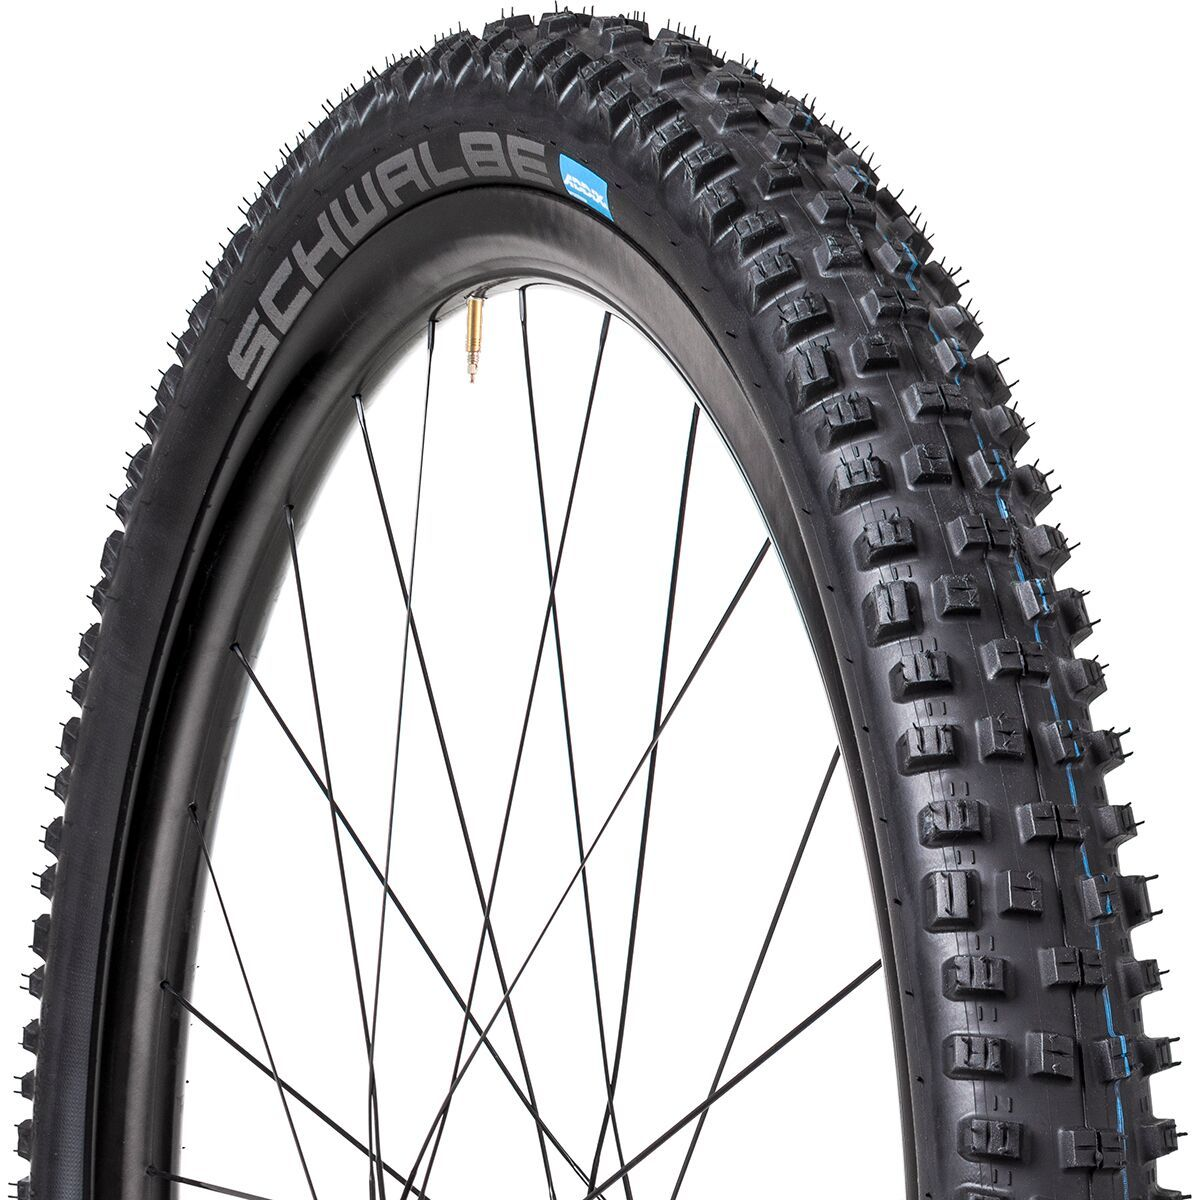 A long-time favorite among trail riders with a need for speed, the Schwalbe Nobby Nic Addix 29in Tire is an ideal all-purpose tire that's right at home on tough XC courses, but also perfect for demanding Enduro courses. The innovative Addix Speed compound delivers unprecedented performance over a variety of surfaces, while the widely-spaced tall knob pattern provides substantial grip while maintaining low rolling-resistance. The Nobby Nic uses a casing that is lightweight, flexible, and features